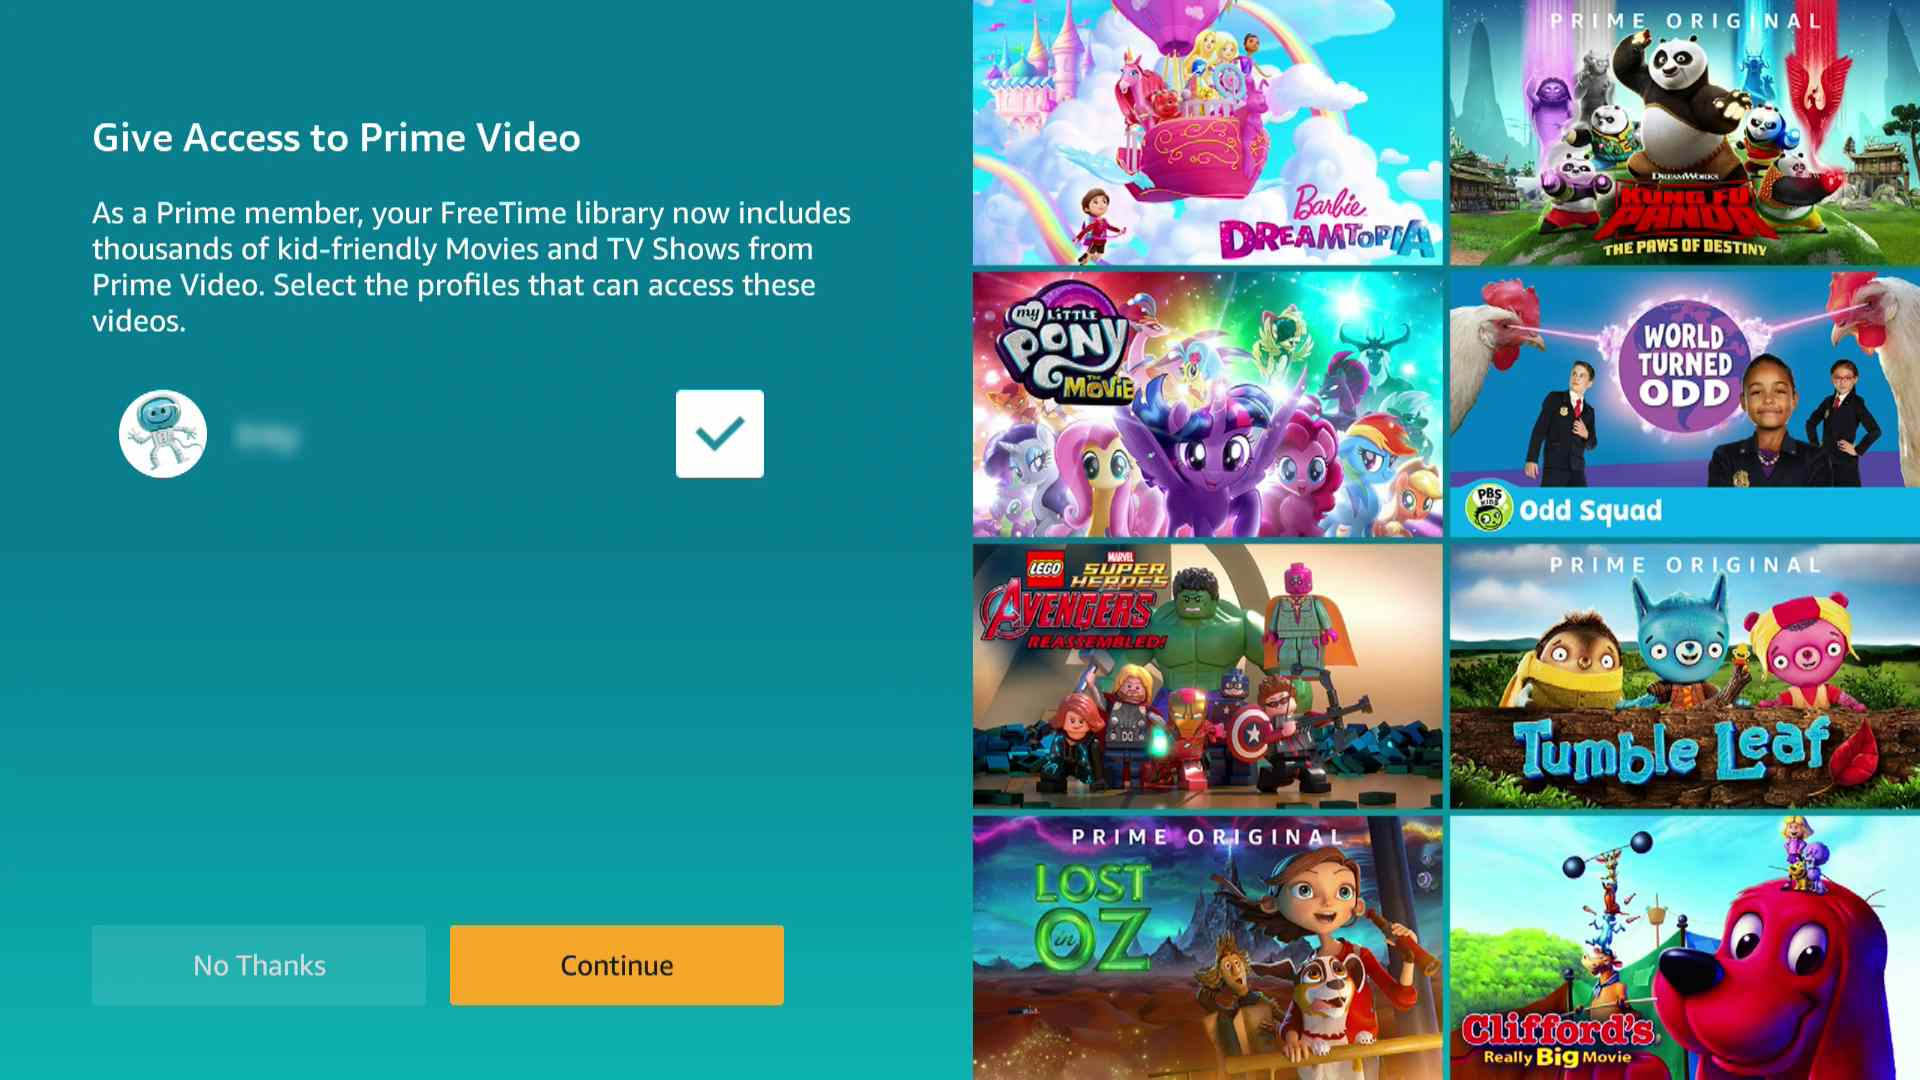 A screenshot of the Prime Video access screen for FreeTime.